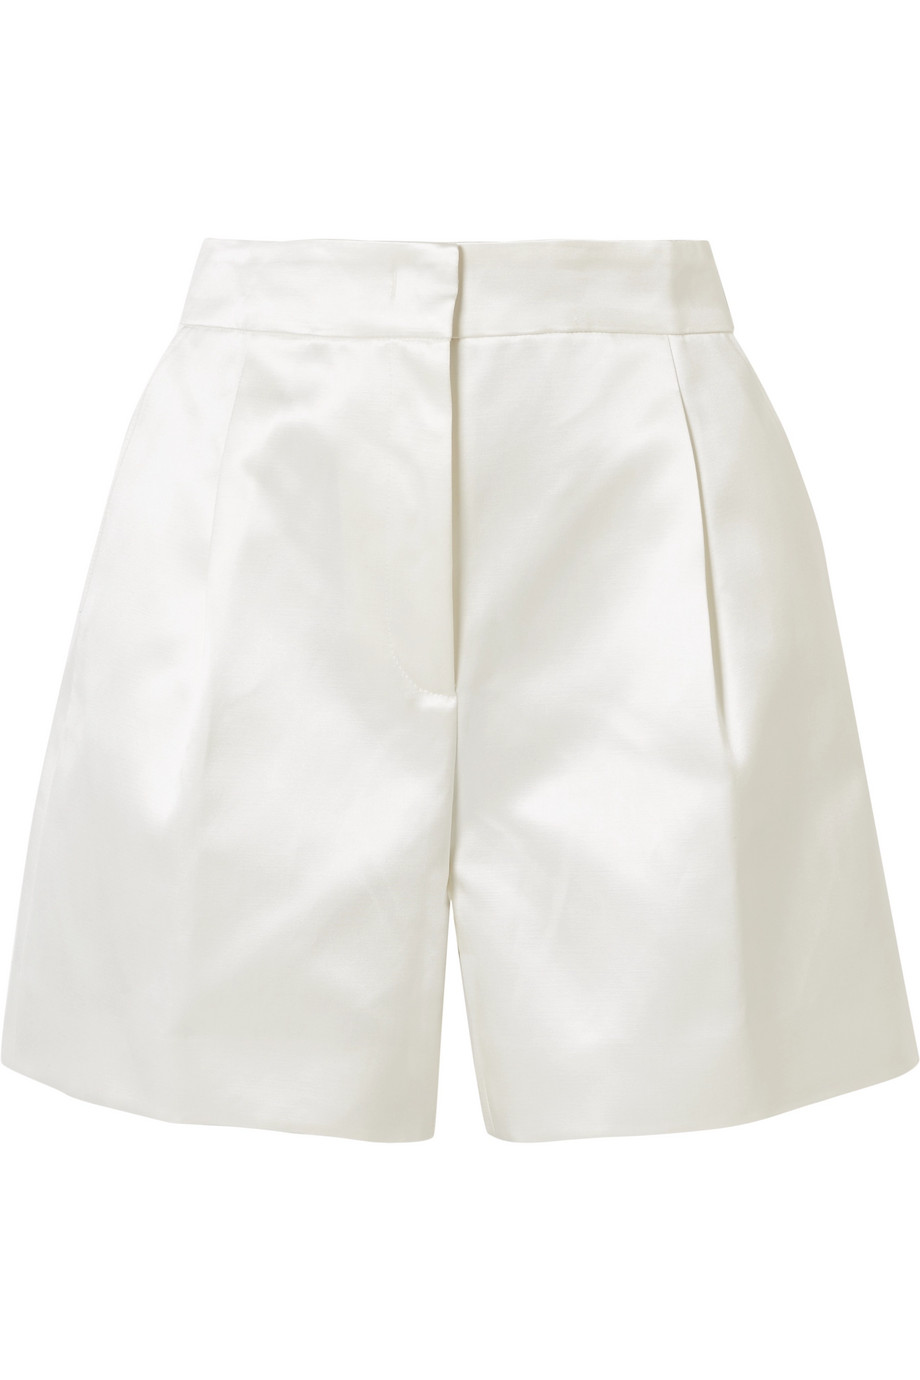 The Edit | Style File: White Shorts for Summer Days